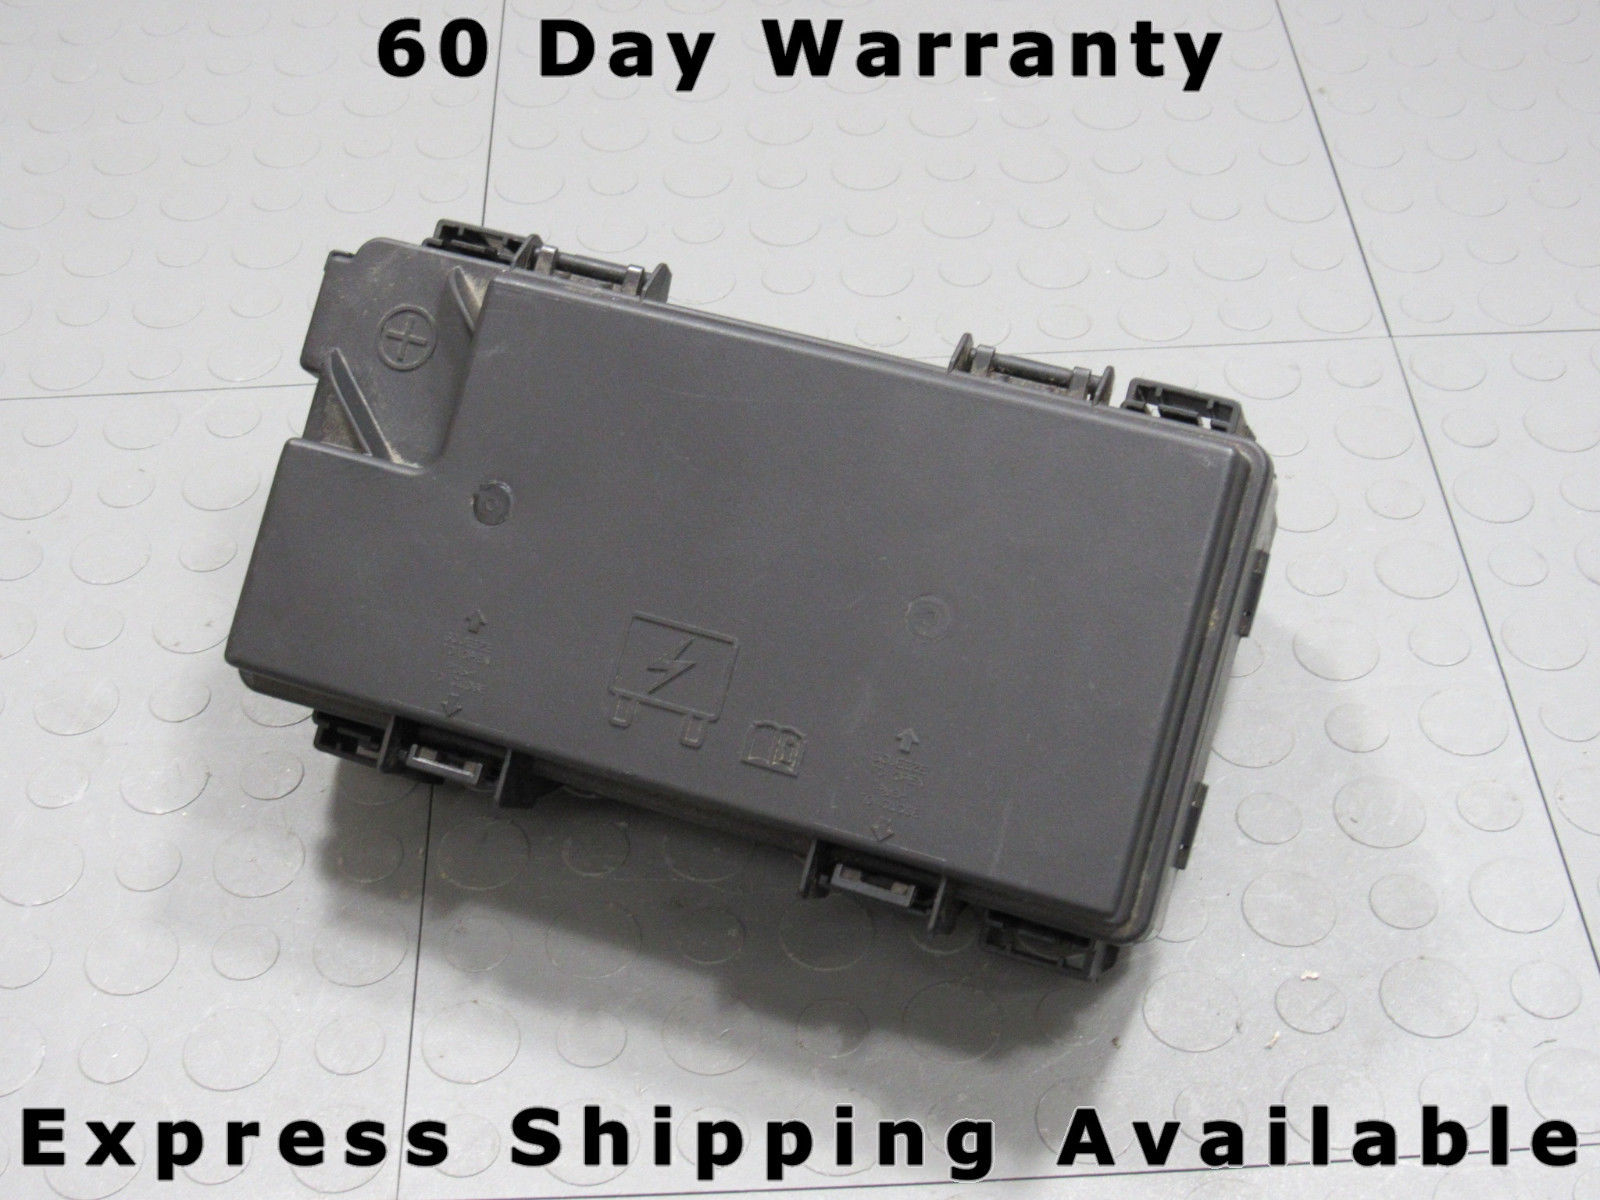 Jeep Fuse Box For Sale Wiring Library Kia Grand Carnival 12 Liberty Tipm Bcm Integrated Power Module Block 68105502ab E